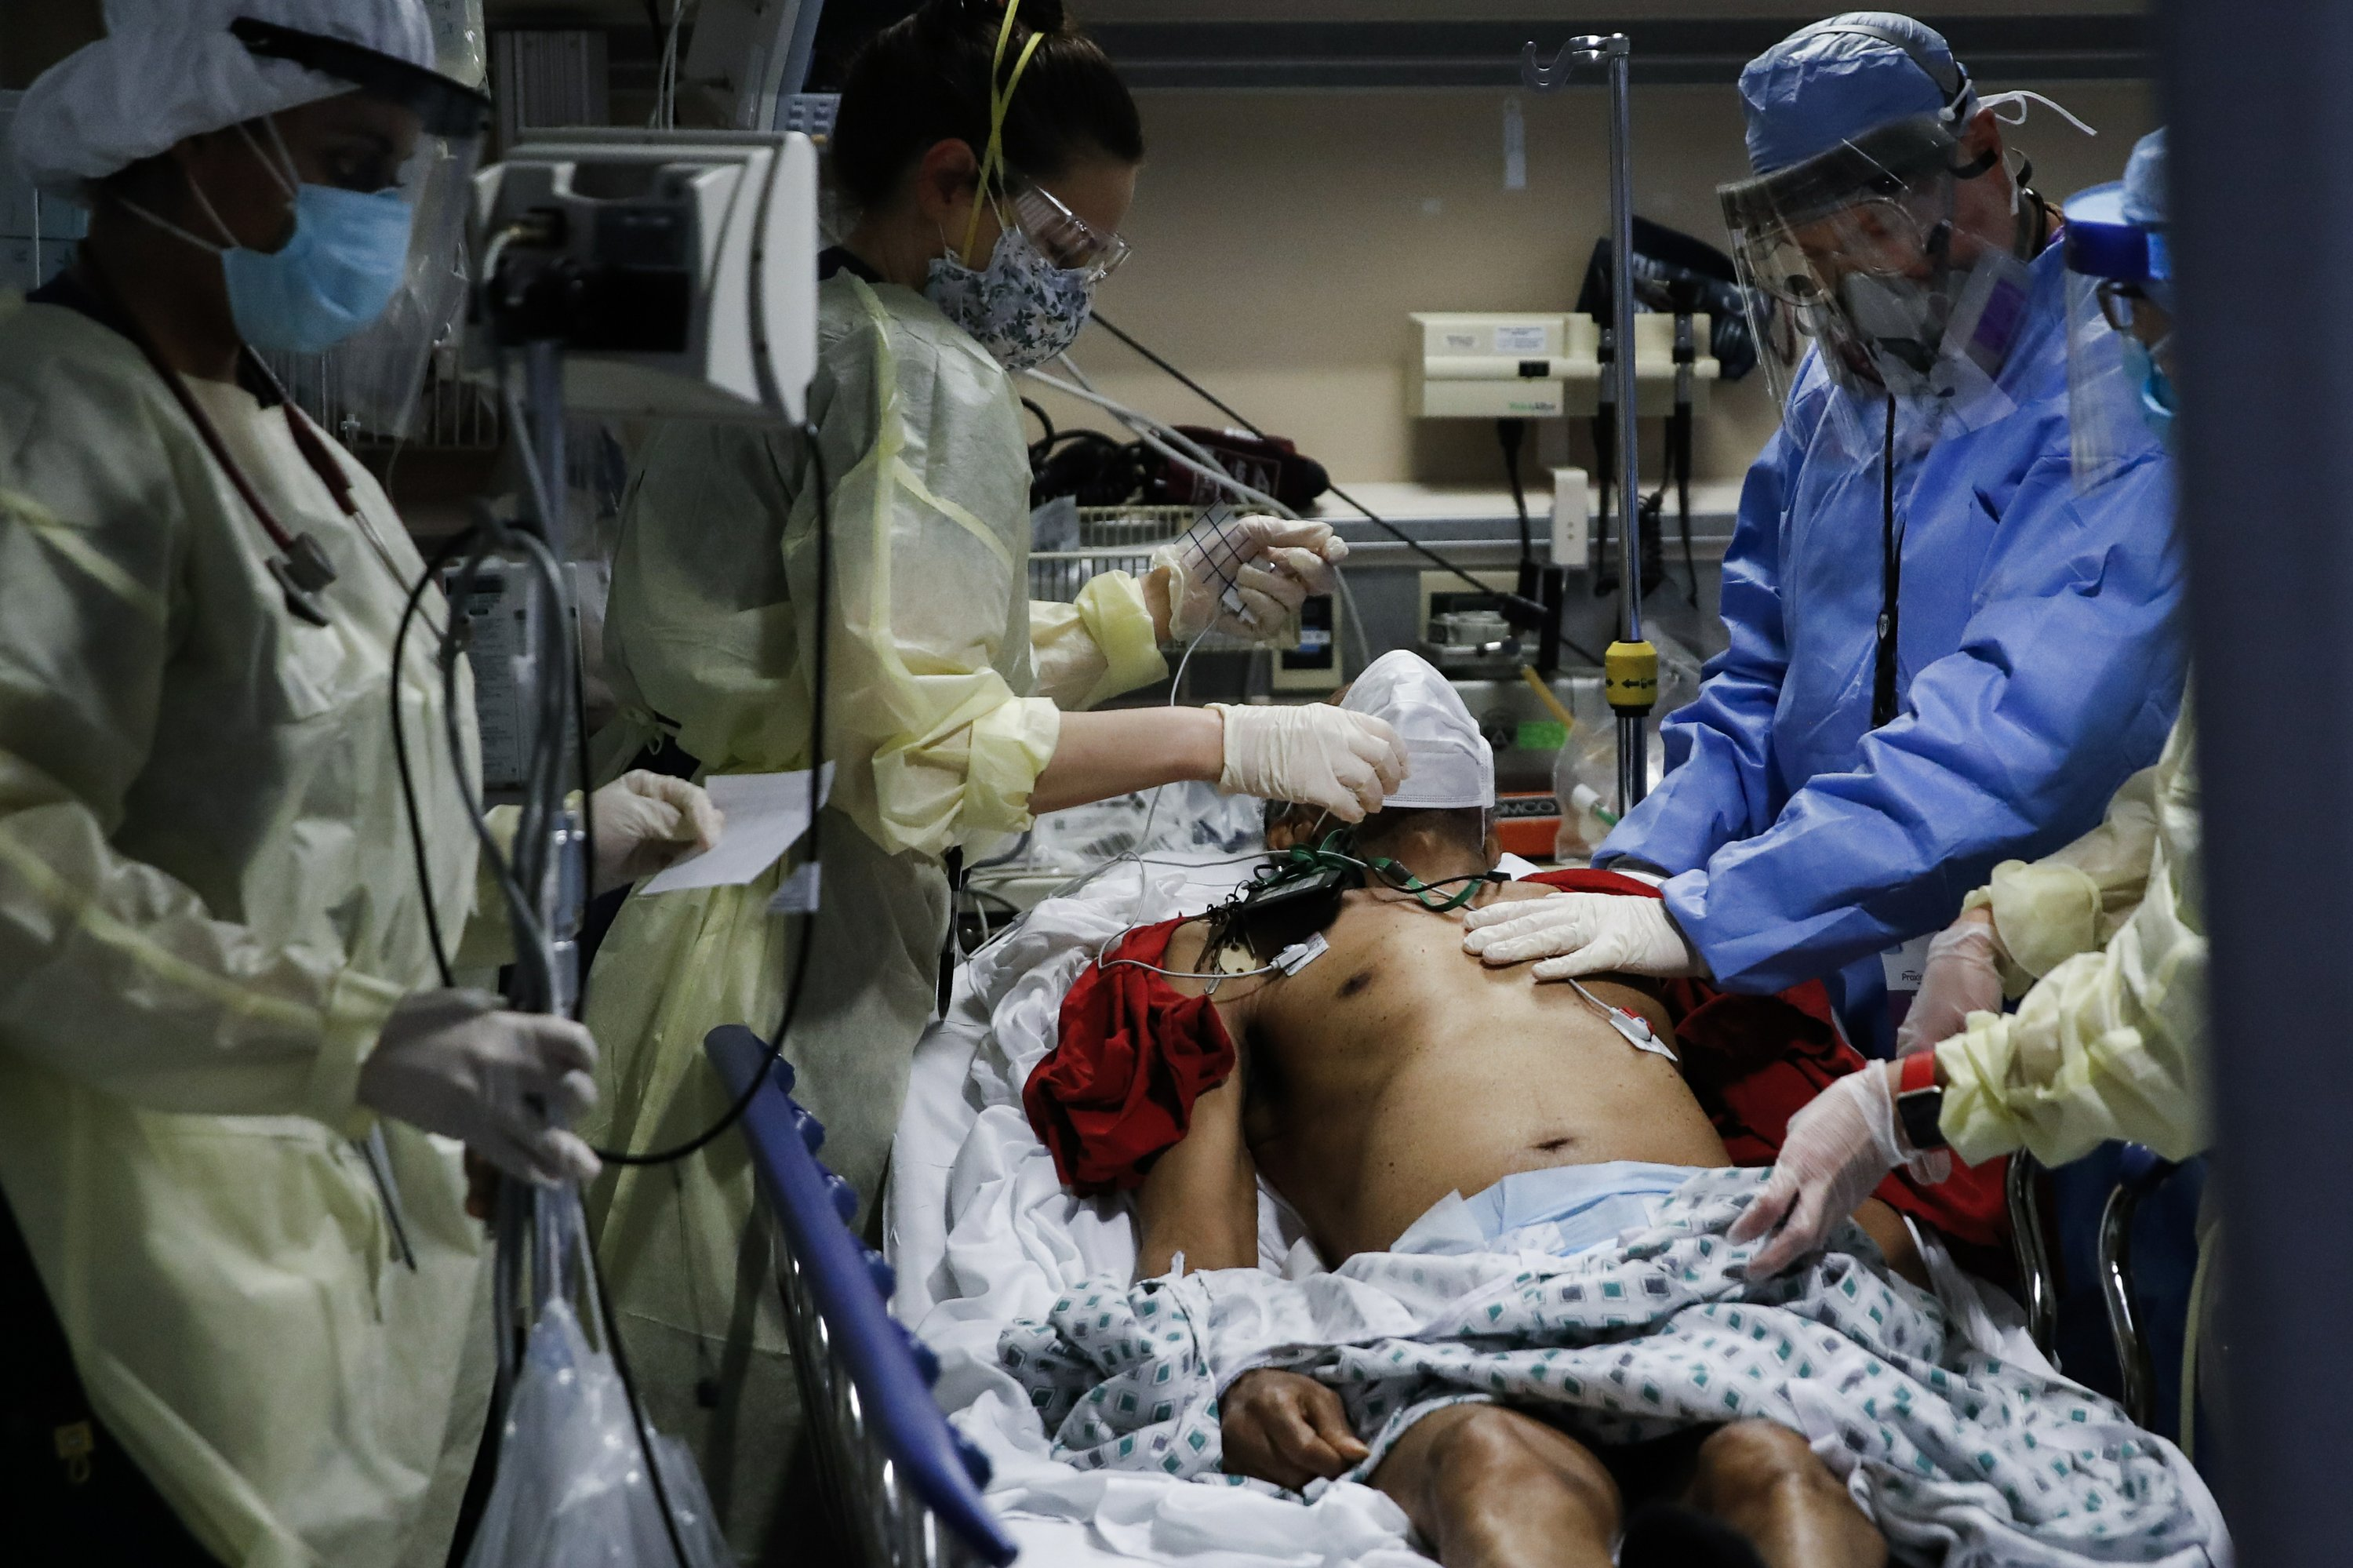 AP PHOTOS: US pandemic toll: In 1 year, half a million lives